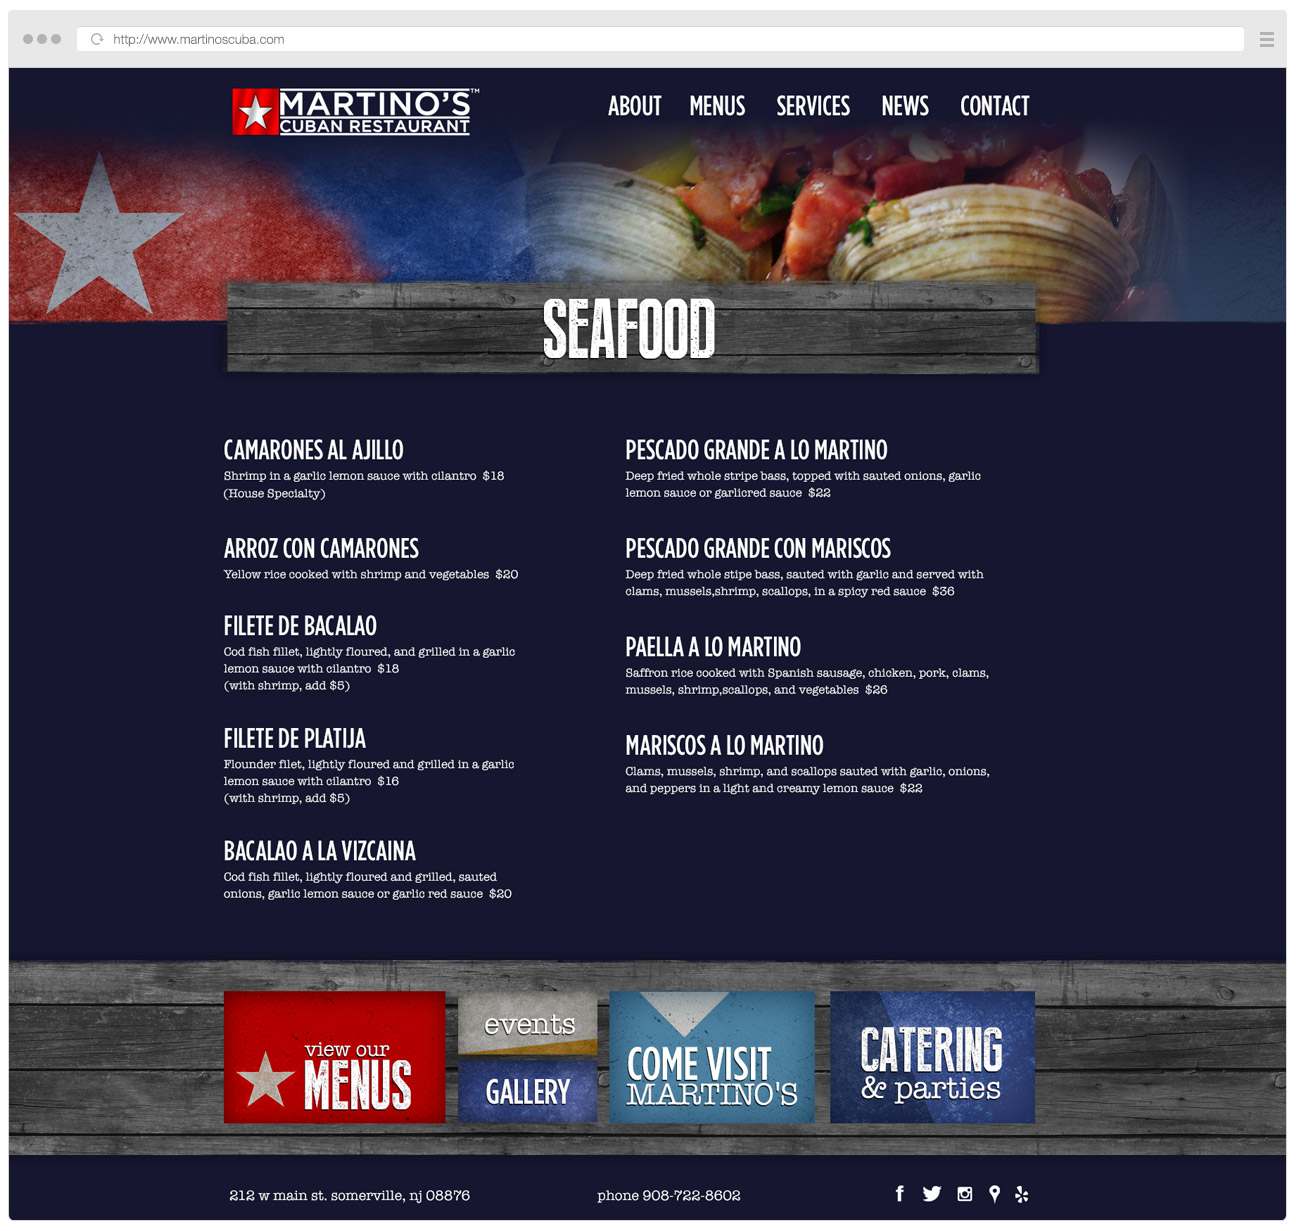 Martino's Cuban Website